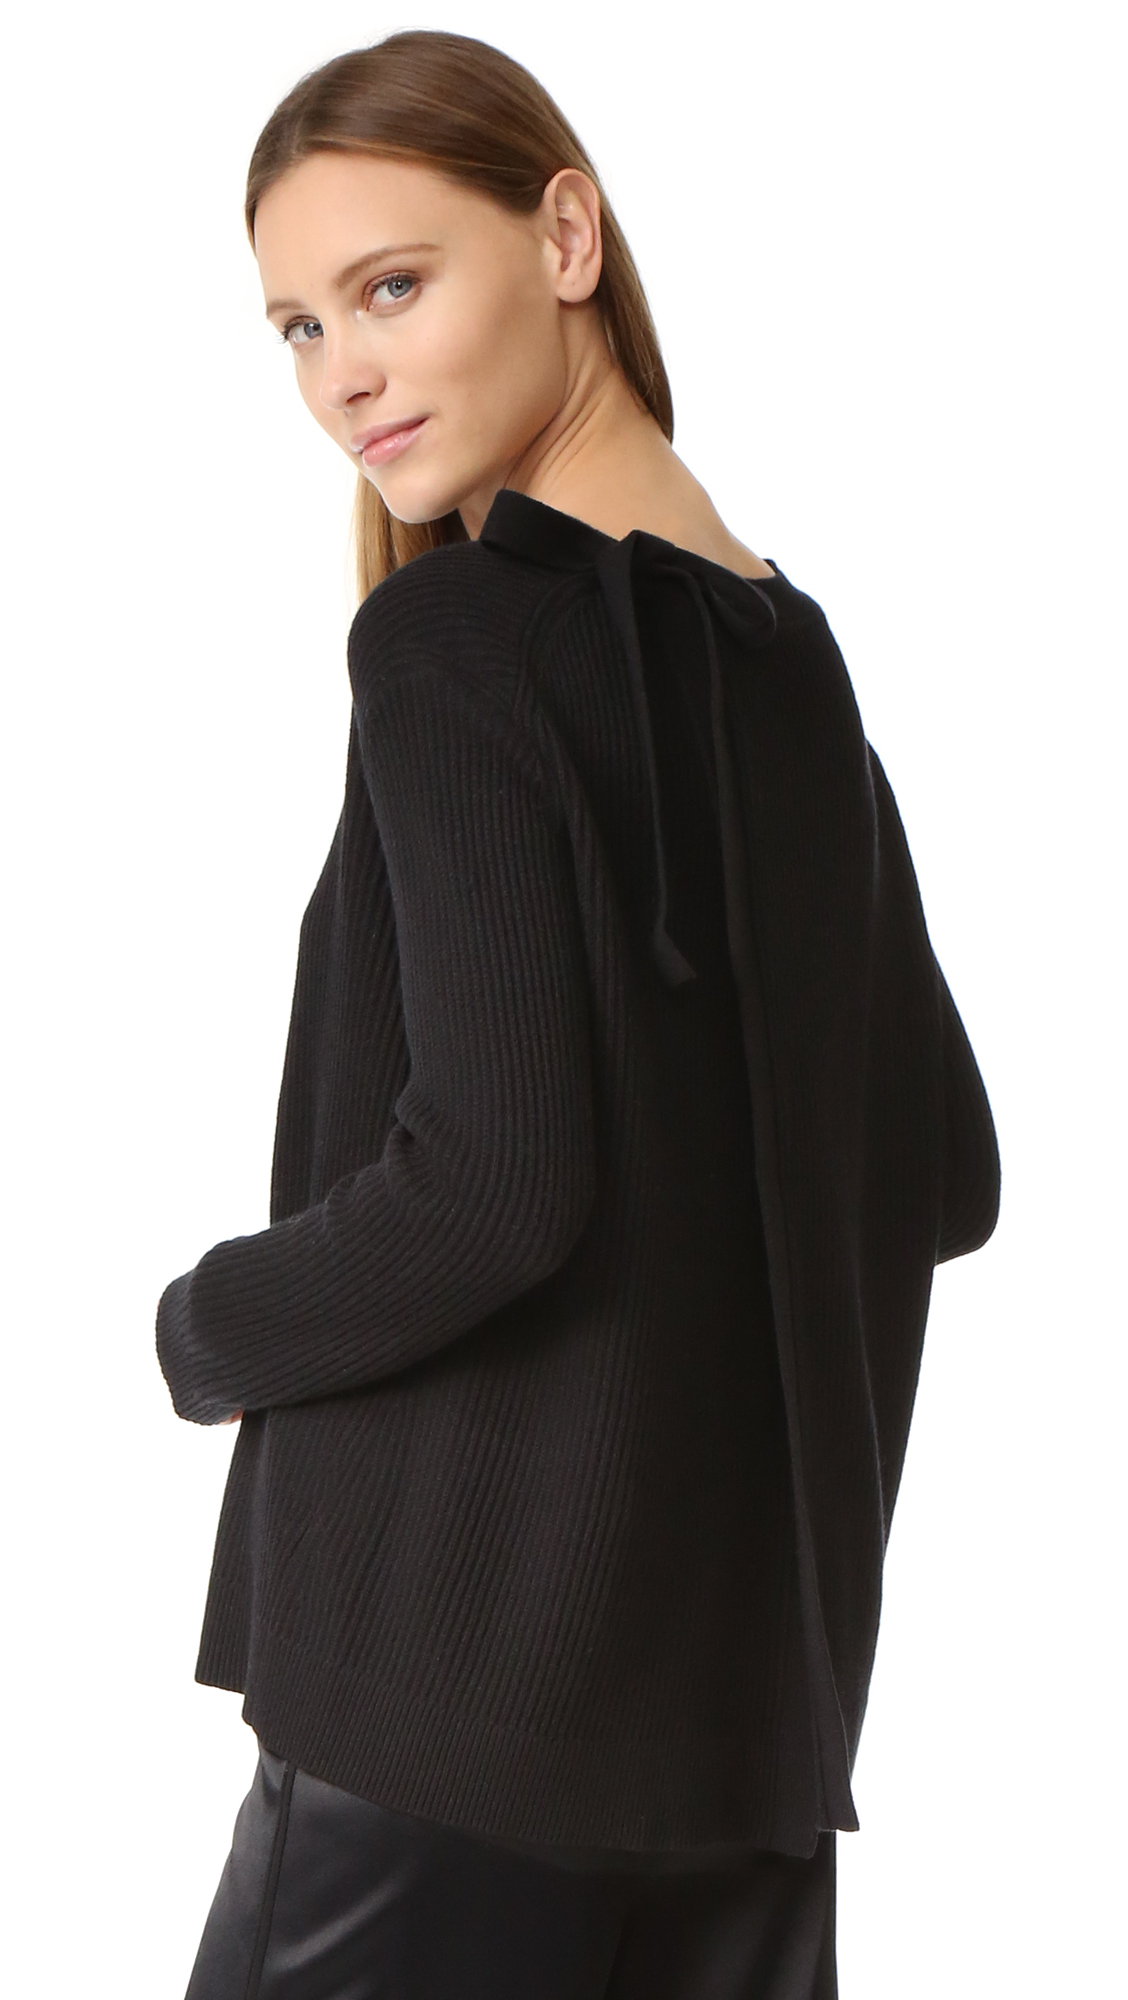 Vince Slit Back Sweater - Black at Shopbop